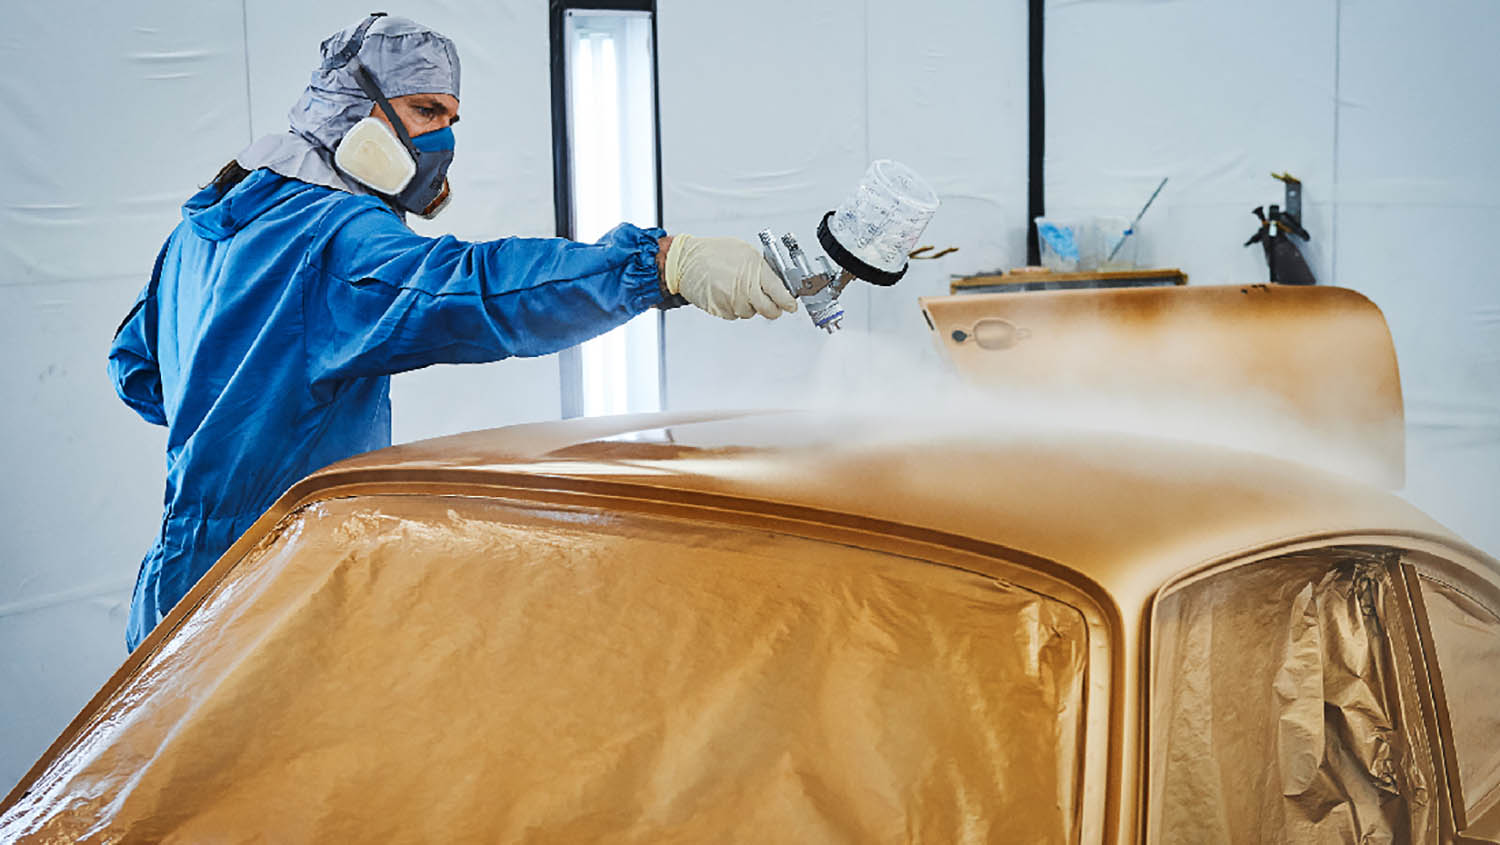 565079_the_coating_classic_project_gold_2018_porsche_ag.jpg